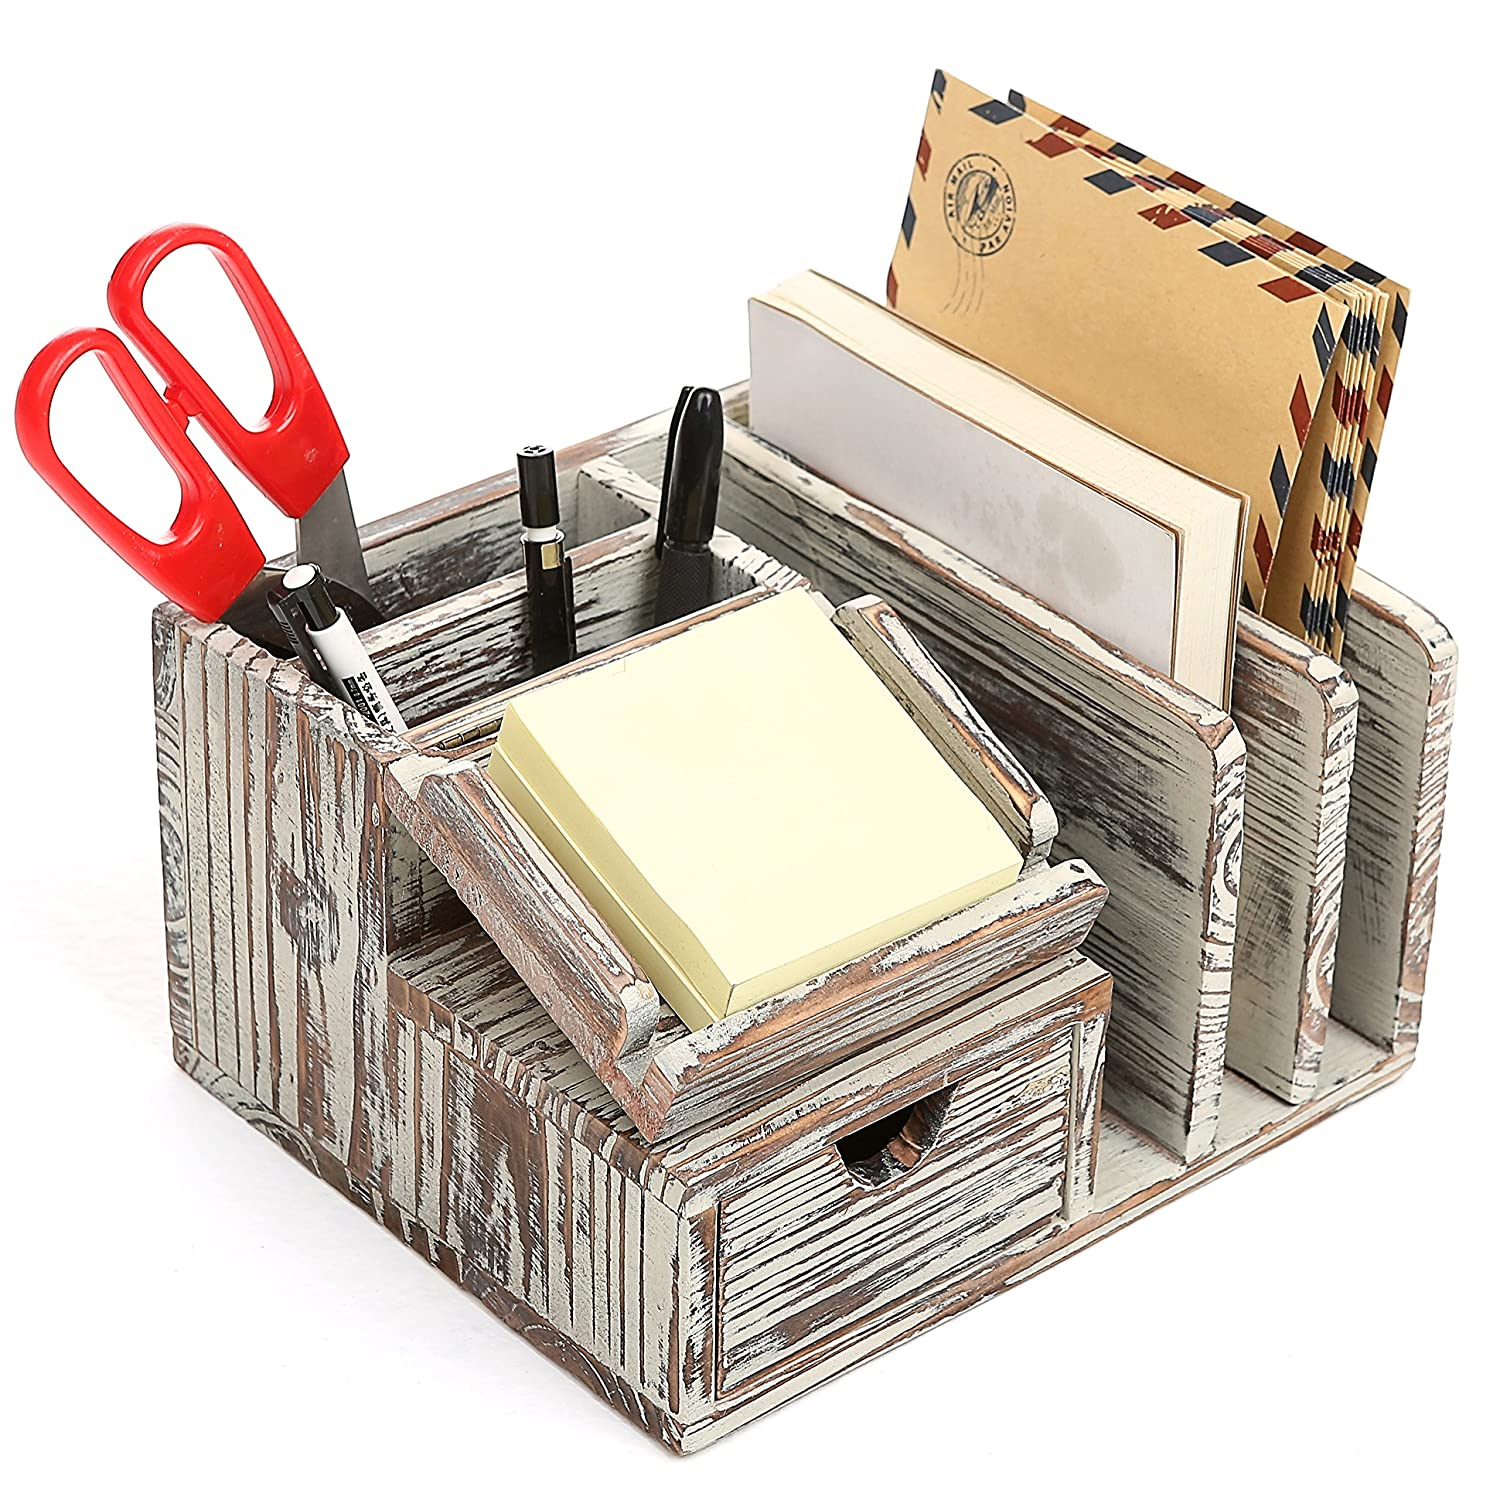 MyGift Torched Wood Desktop Office Organizer w/Sticky Note Pad Holder, Mail Sorter & Pullout Drawer